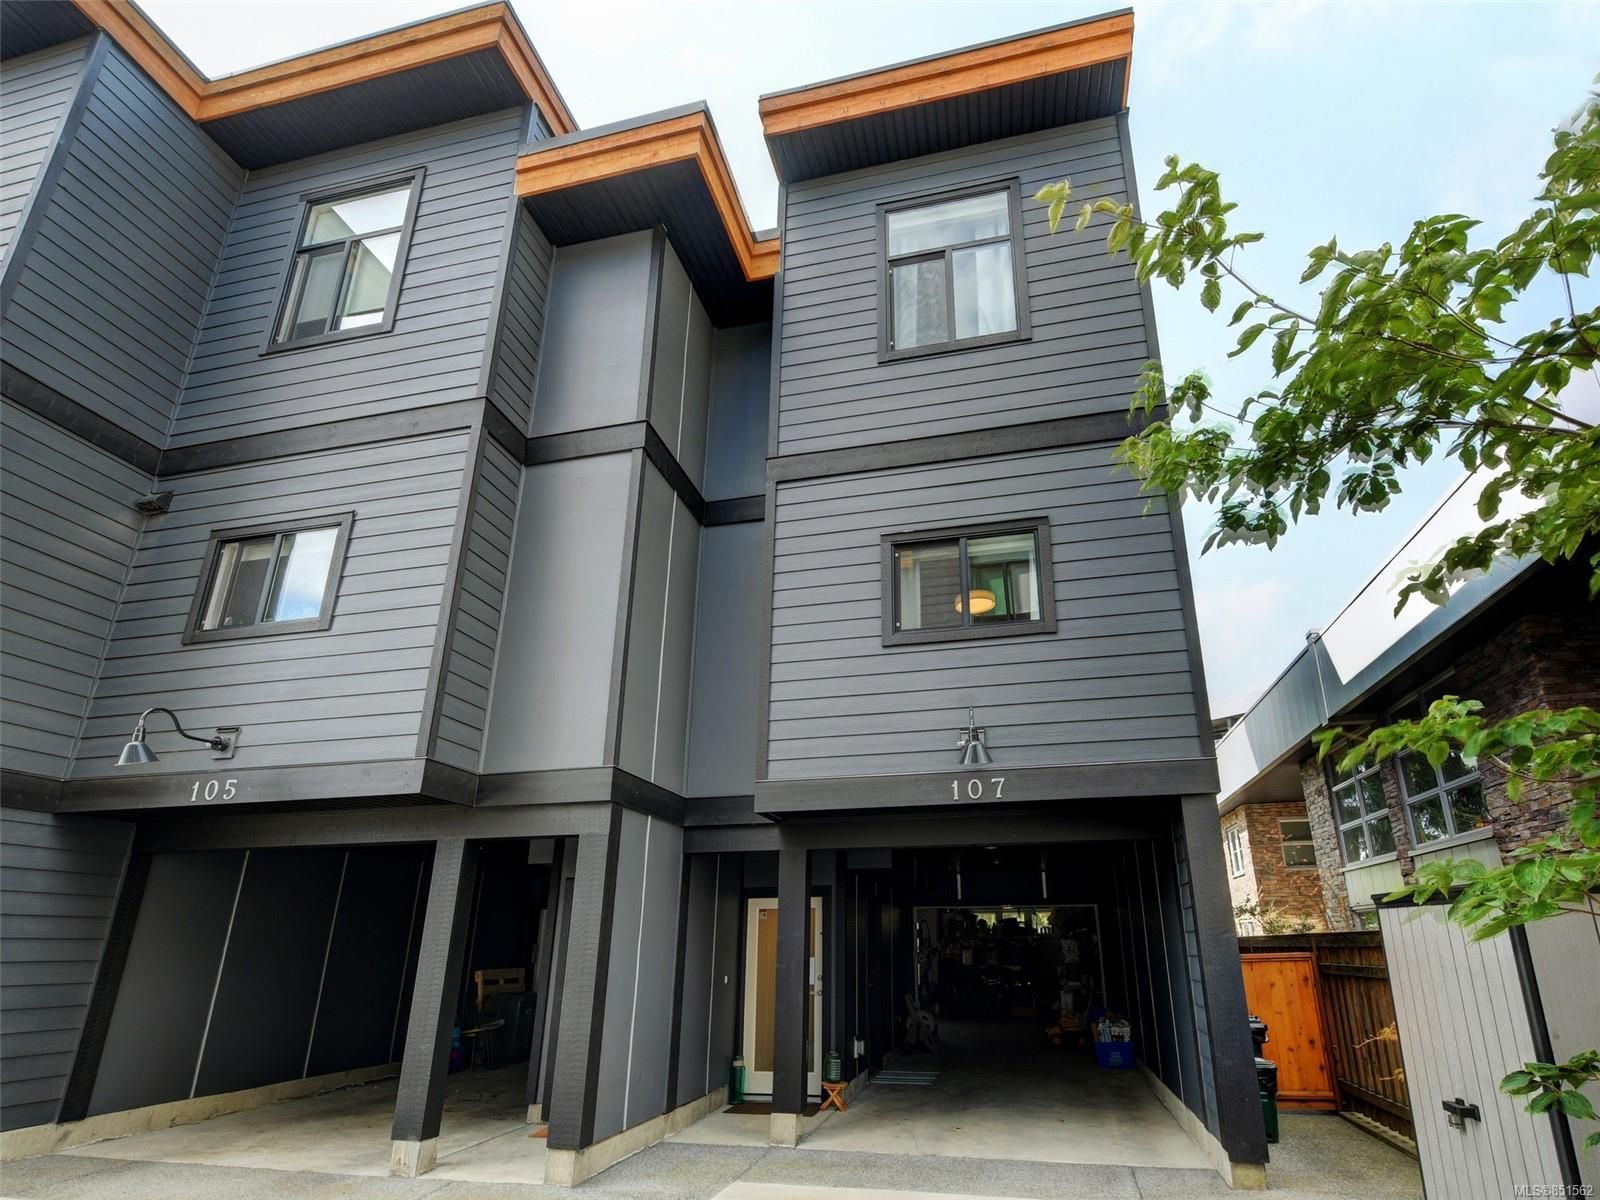 Main Photo: 107 679 Wagar Ave in : La Langford Proper Row/Townhouse for sale (Langford)  : MLS®# 851562